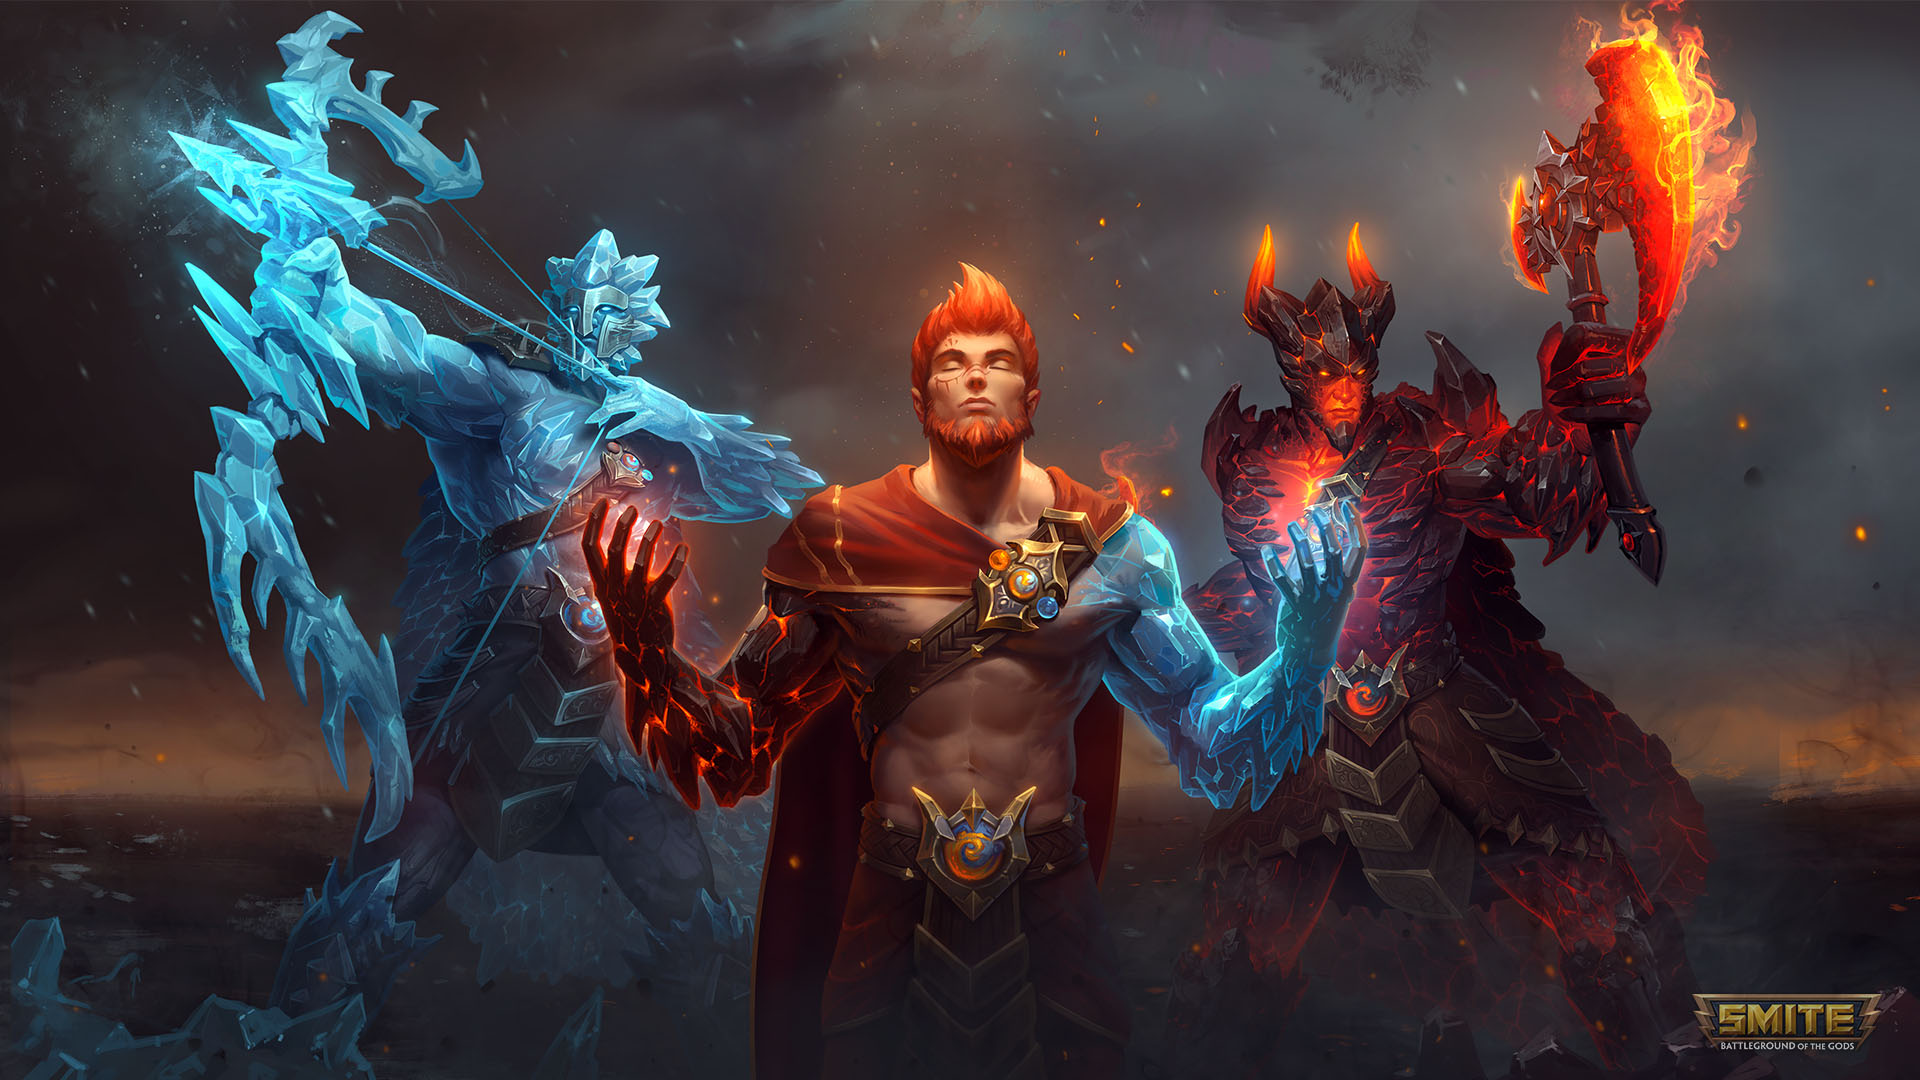 Smite Best Mage 2019 SMITE 5.9 update: Hi Rez pushing mages, killing support classes